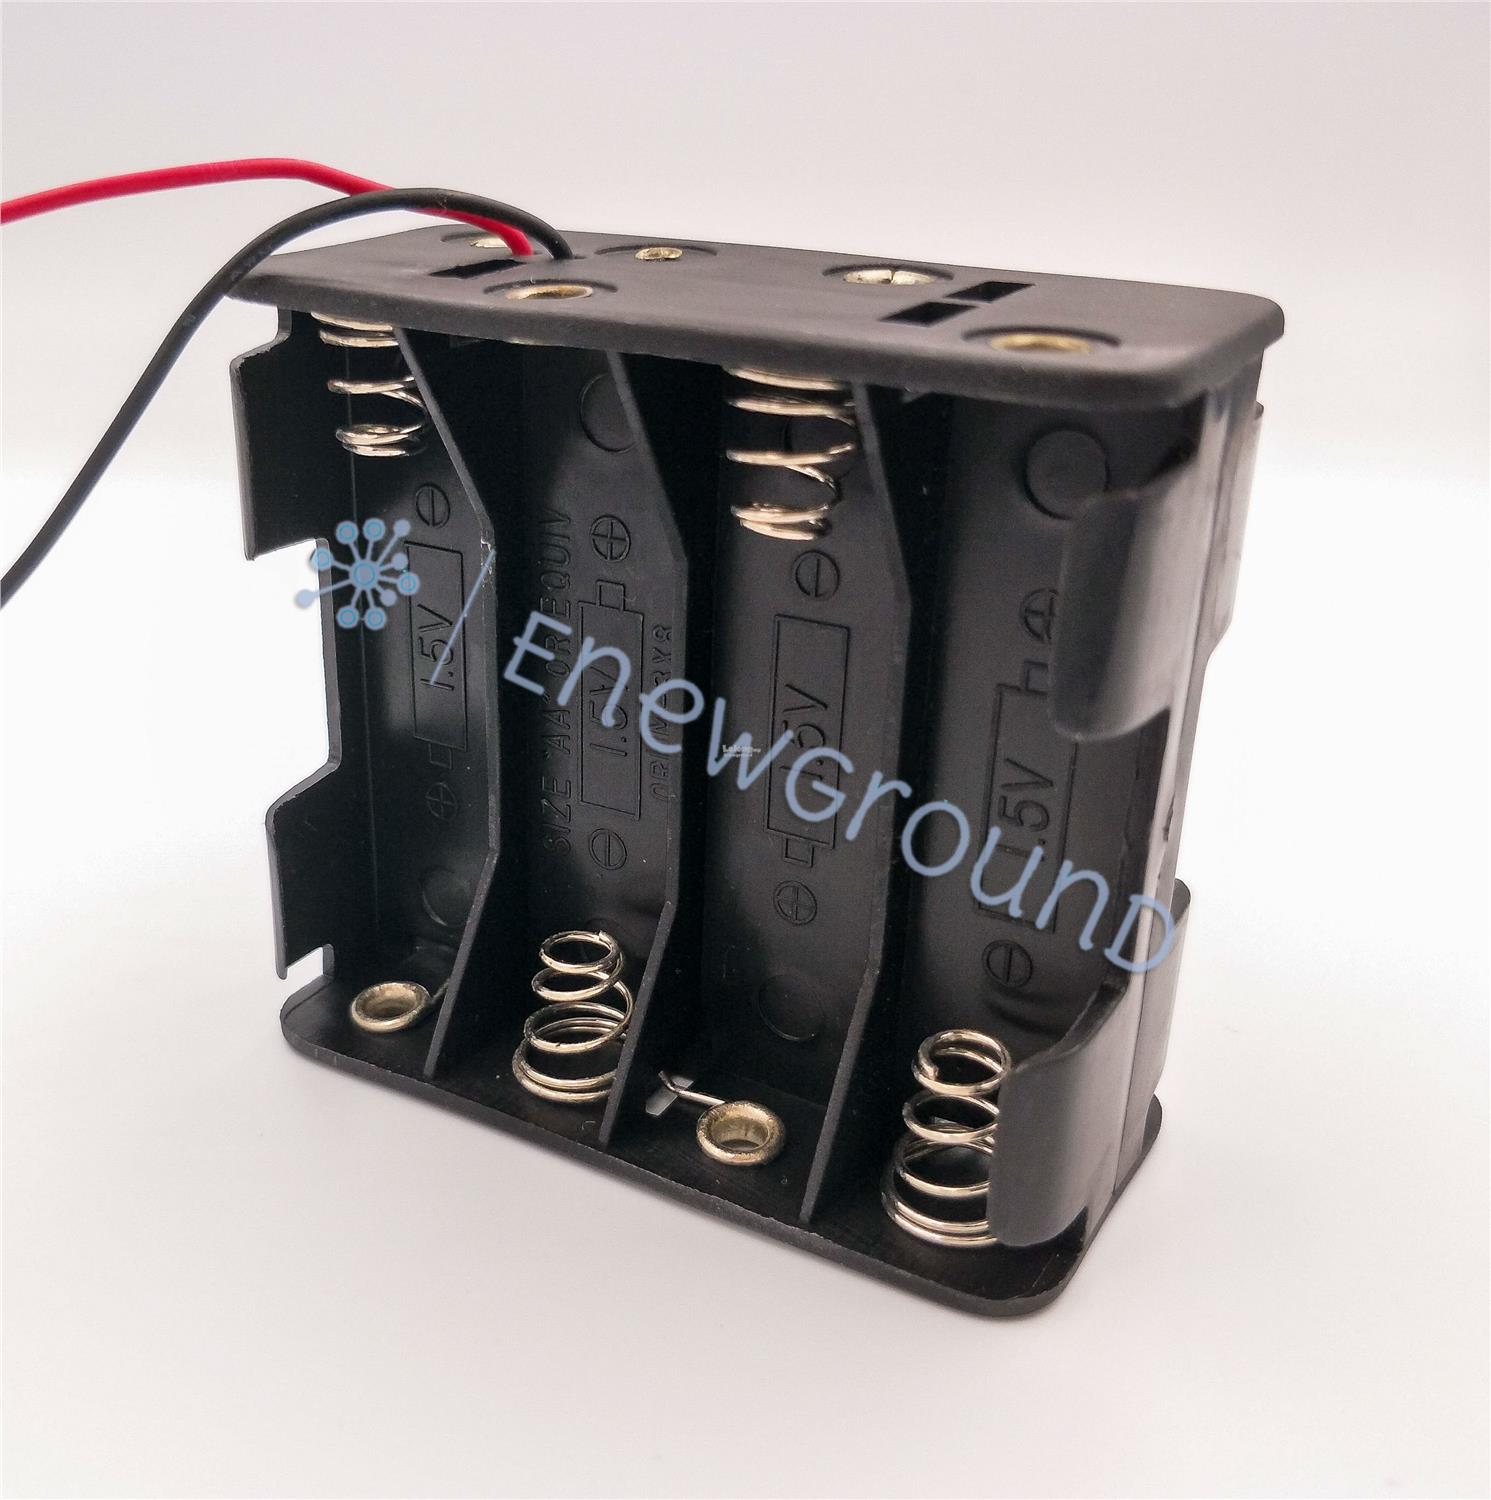 AA size battery holder with coil spring contact (8 cell, double side)